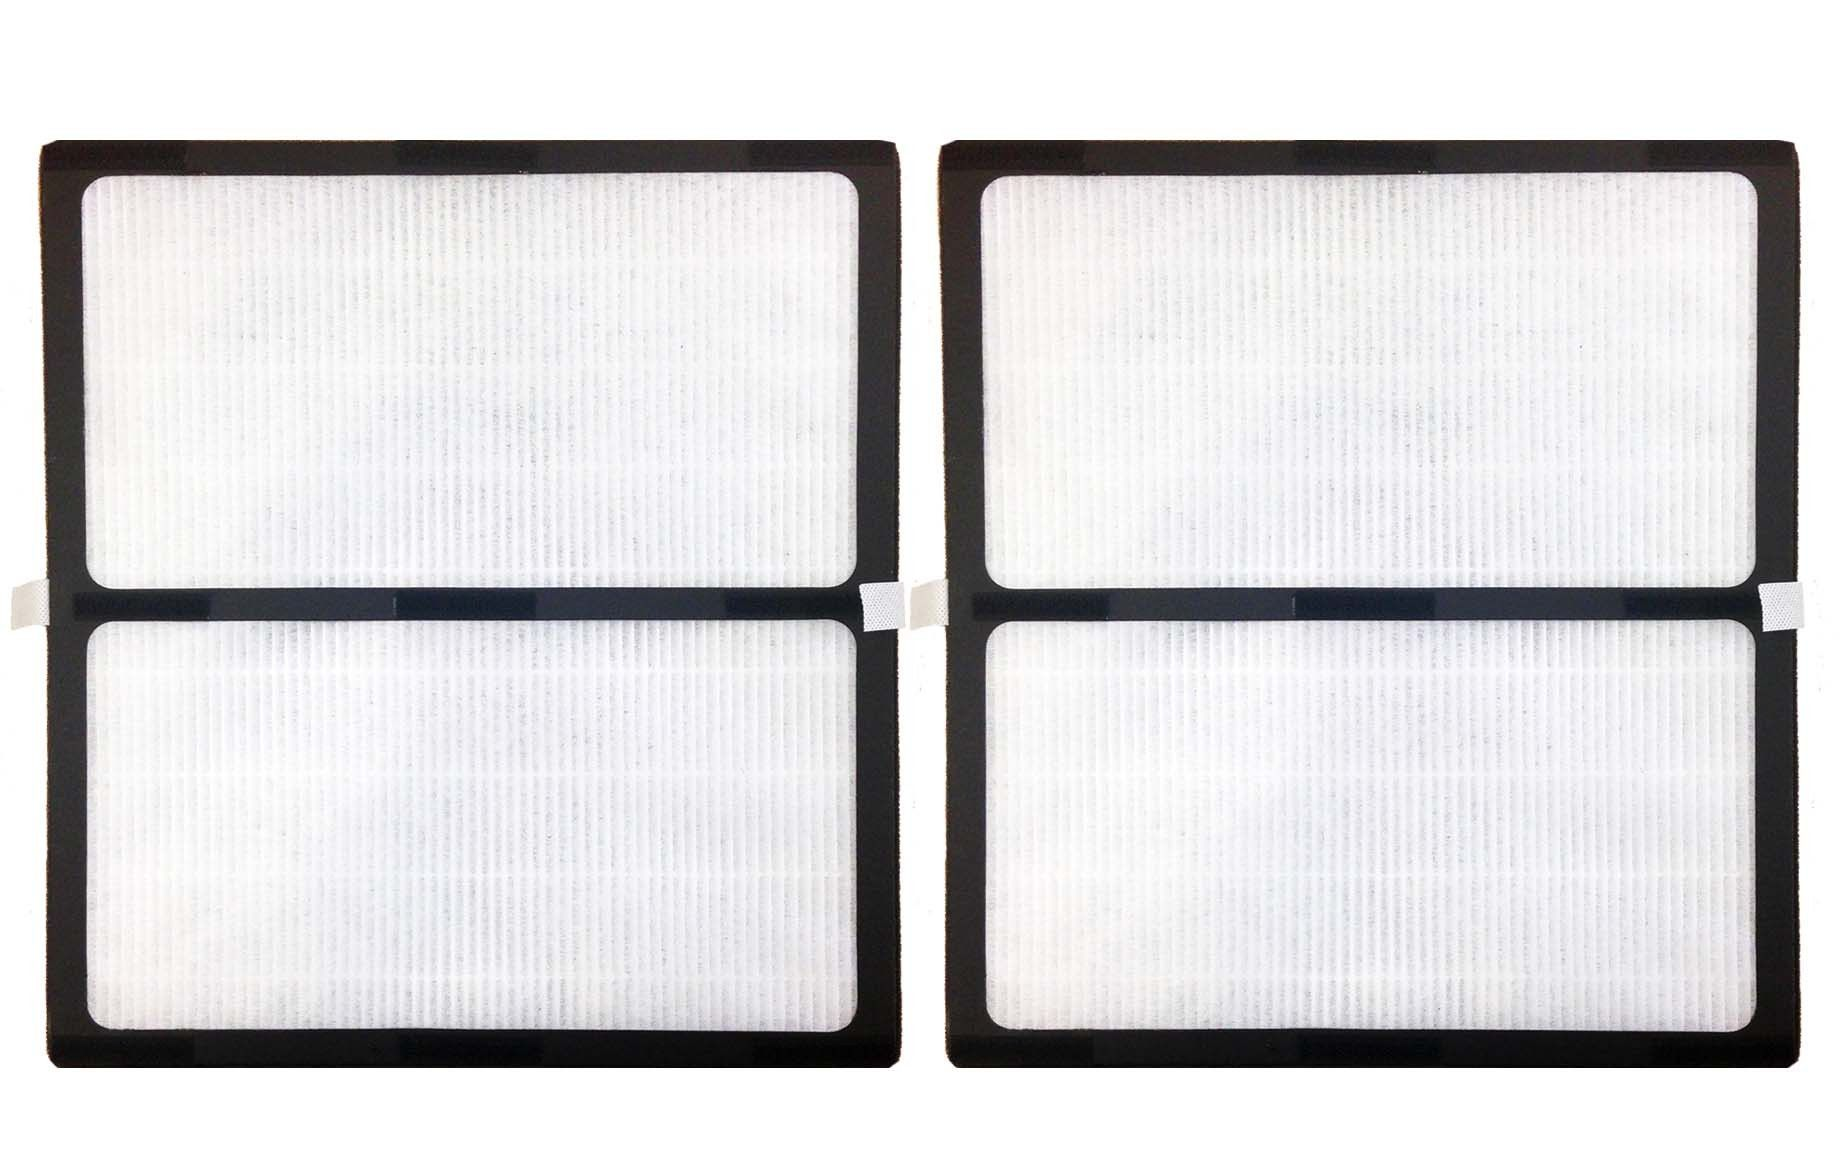 2 Idylis Air Purifier Type D Replacement Filters Part